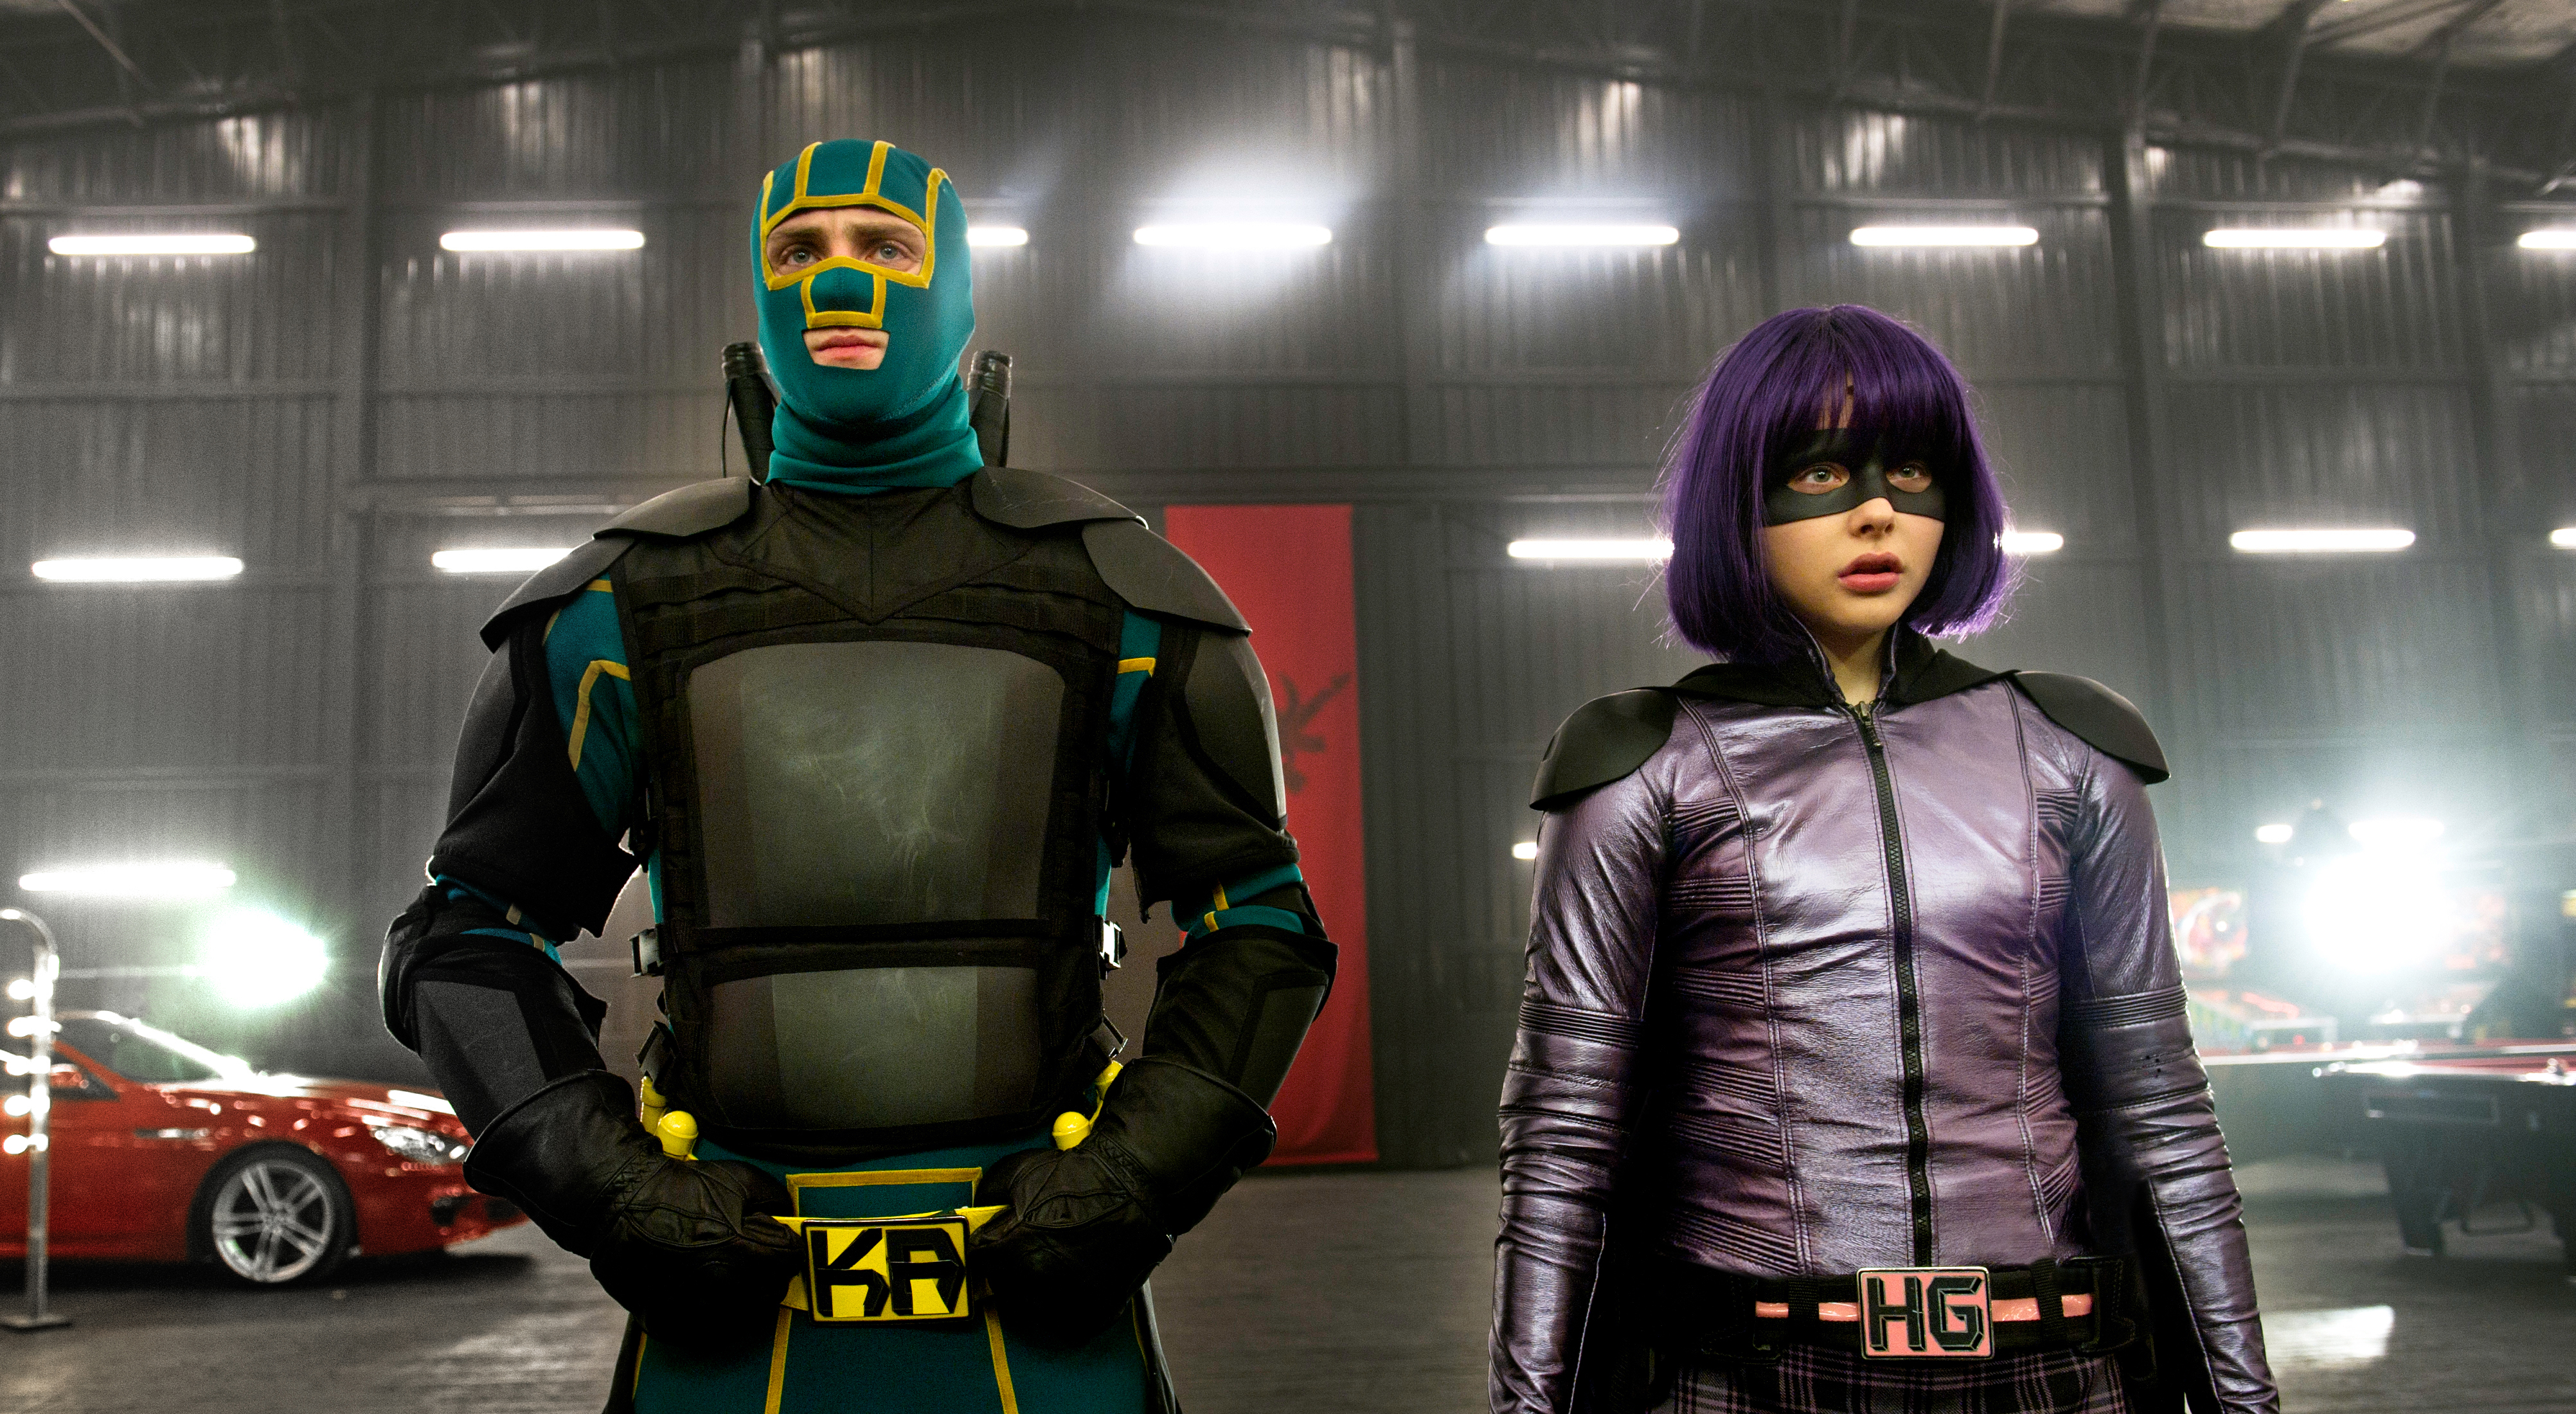 kick-ass 2 hit girl kick ass